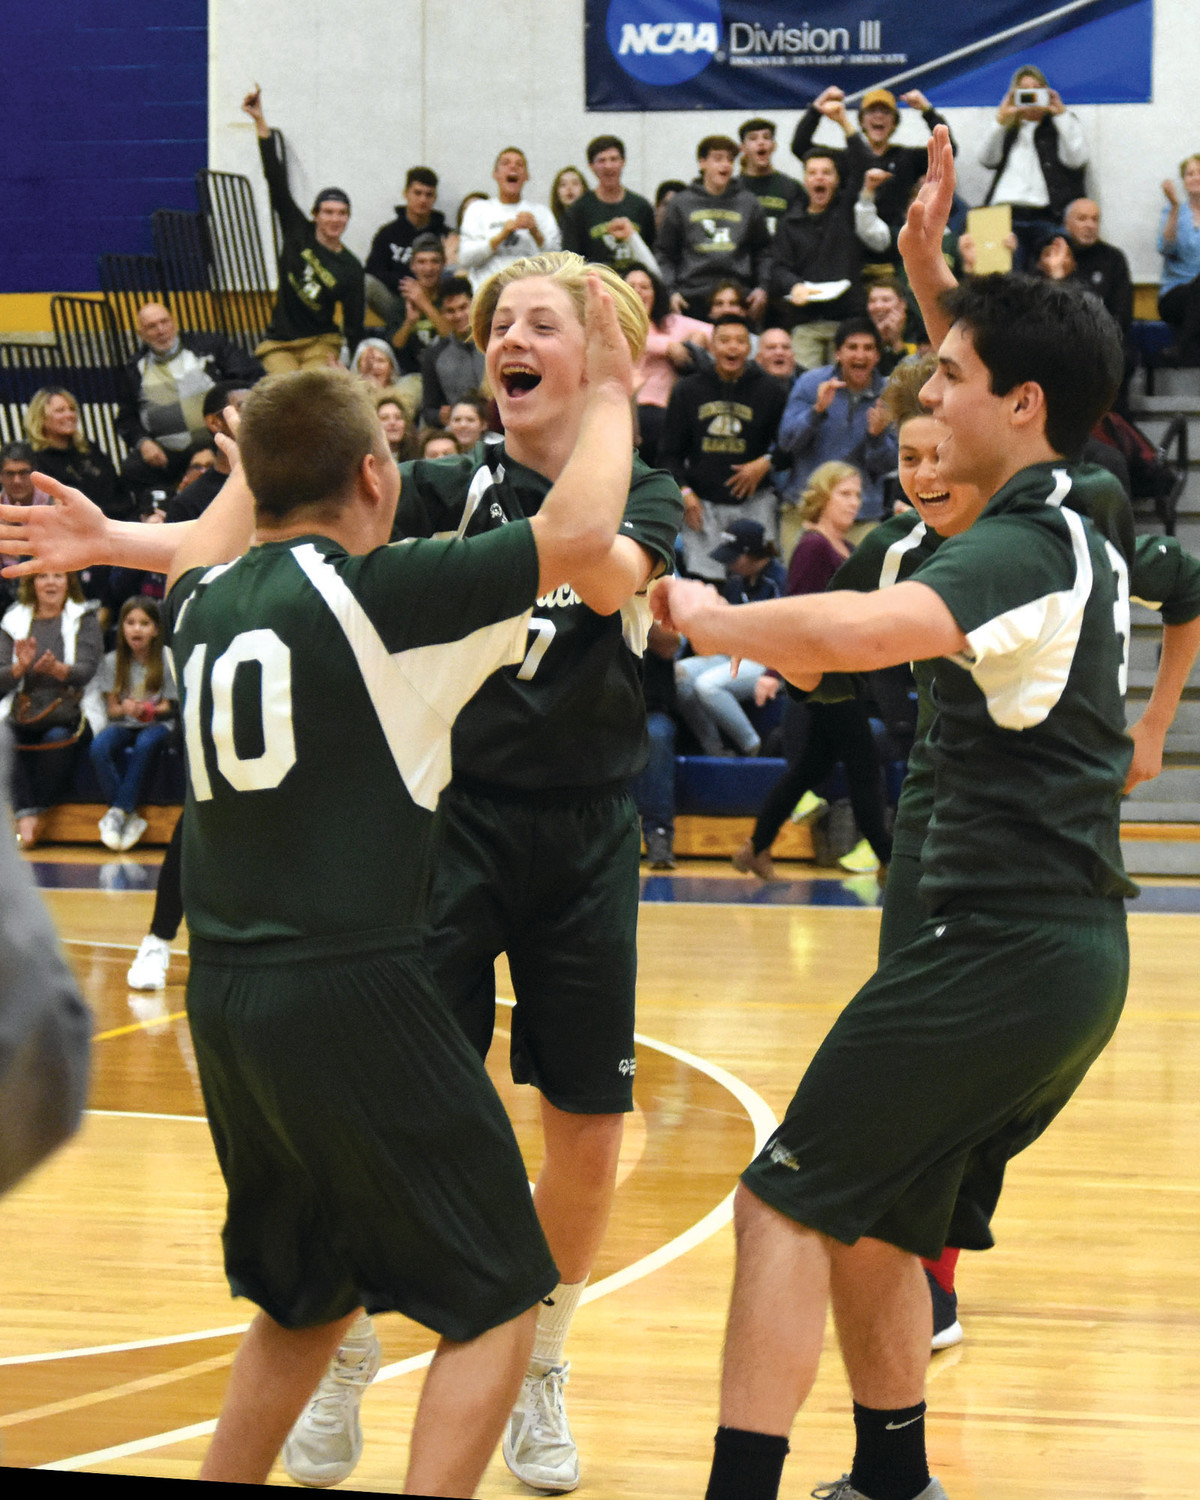 Bishop Hendricken unified volleyball players Aidan Lawton, Cam Toussaint and Brian Schattle celebrate during the team's state championship win over Portsmouth.